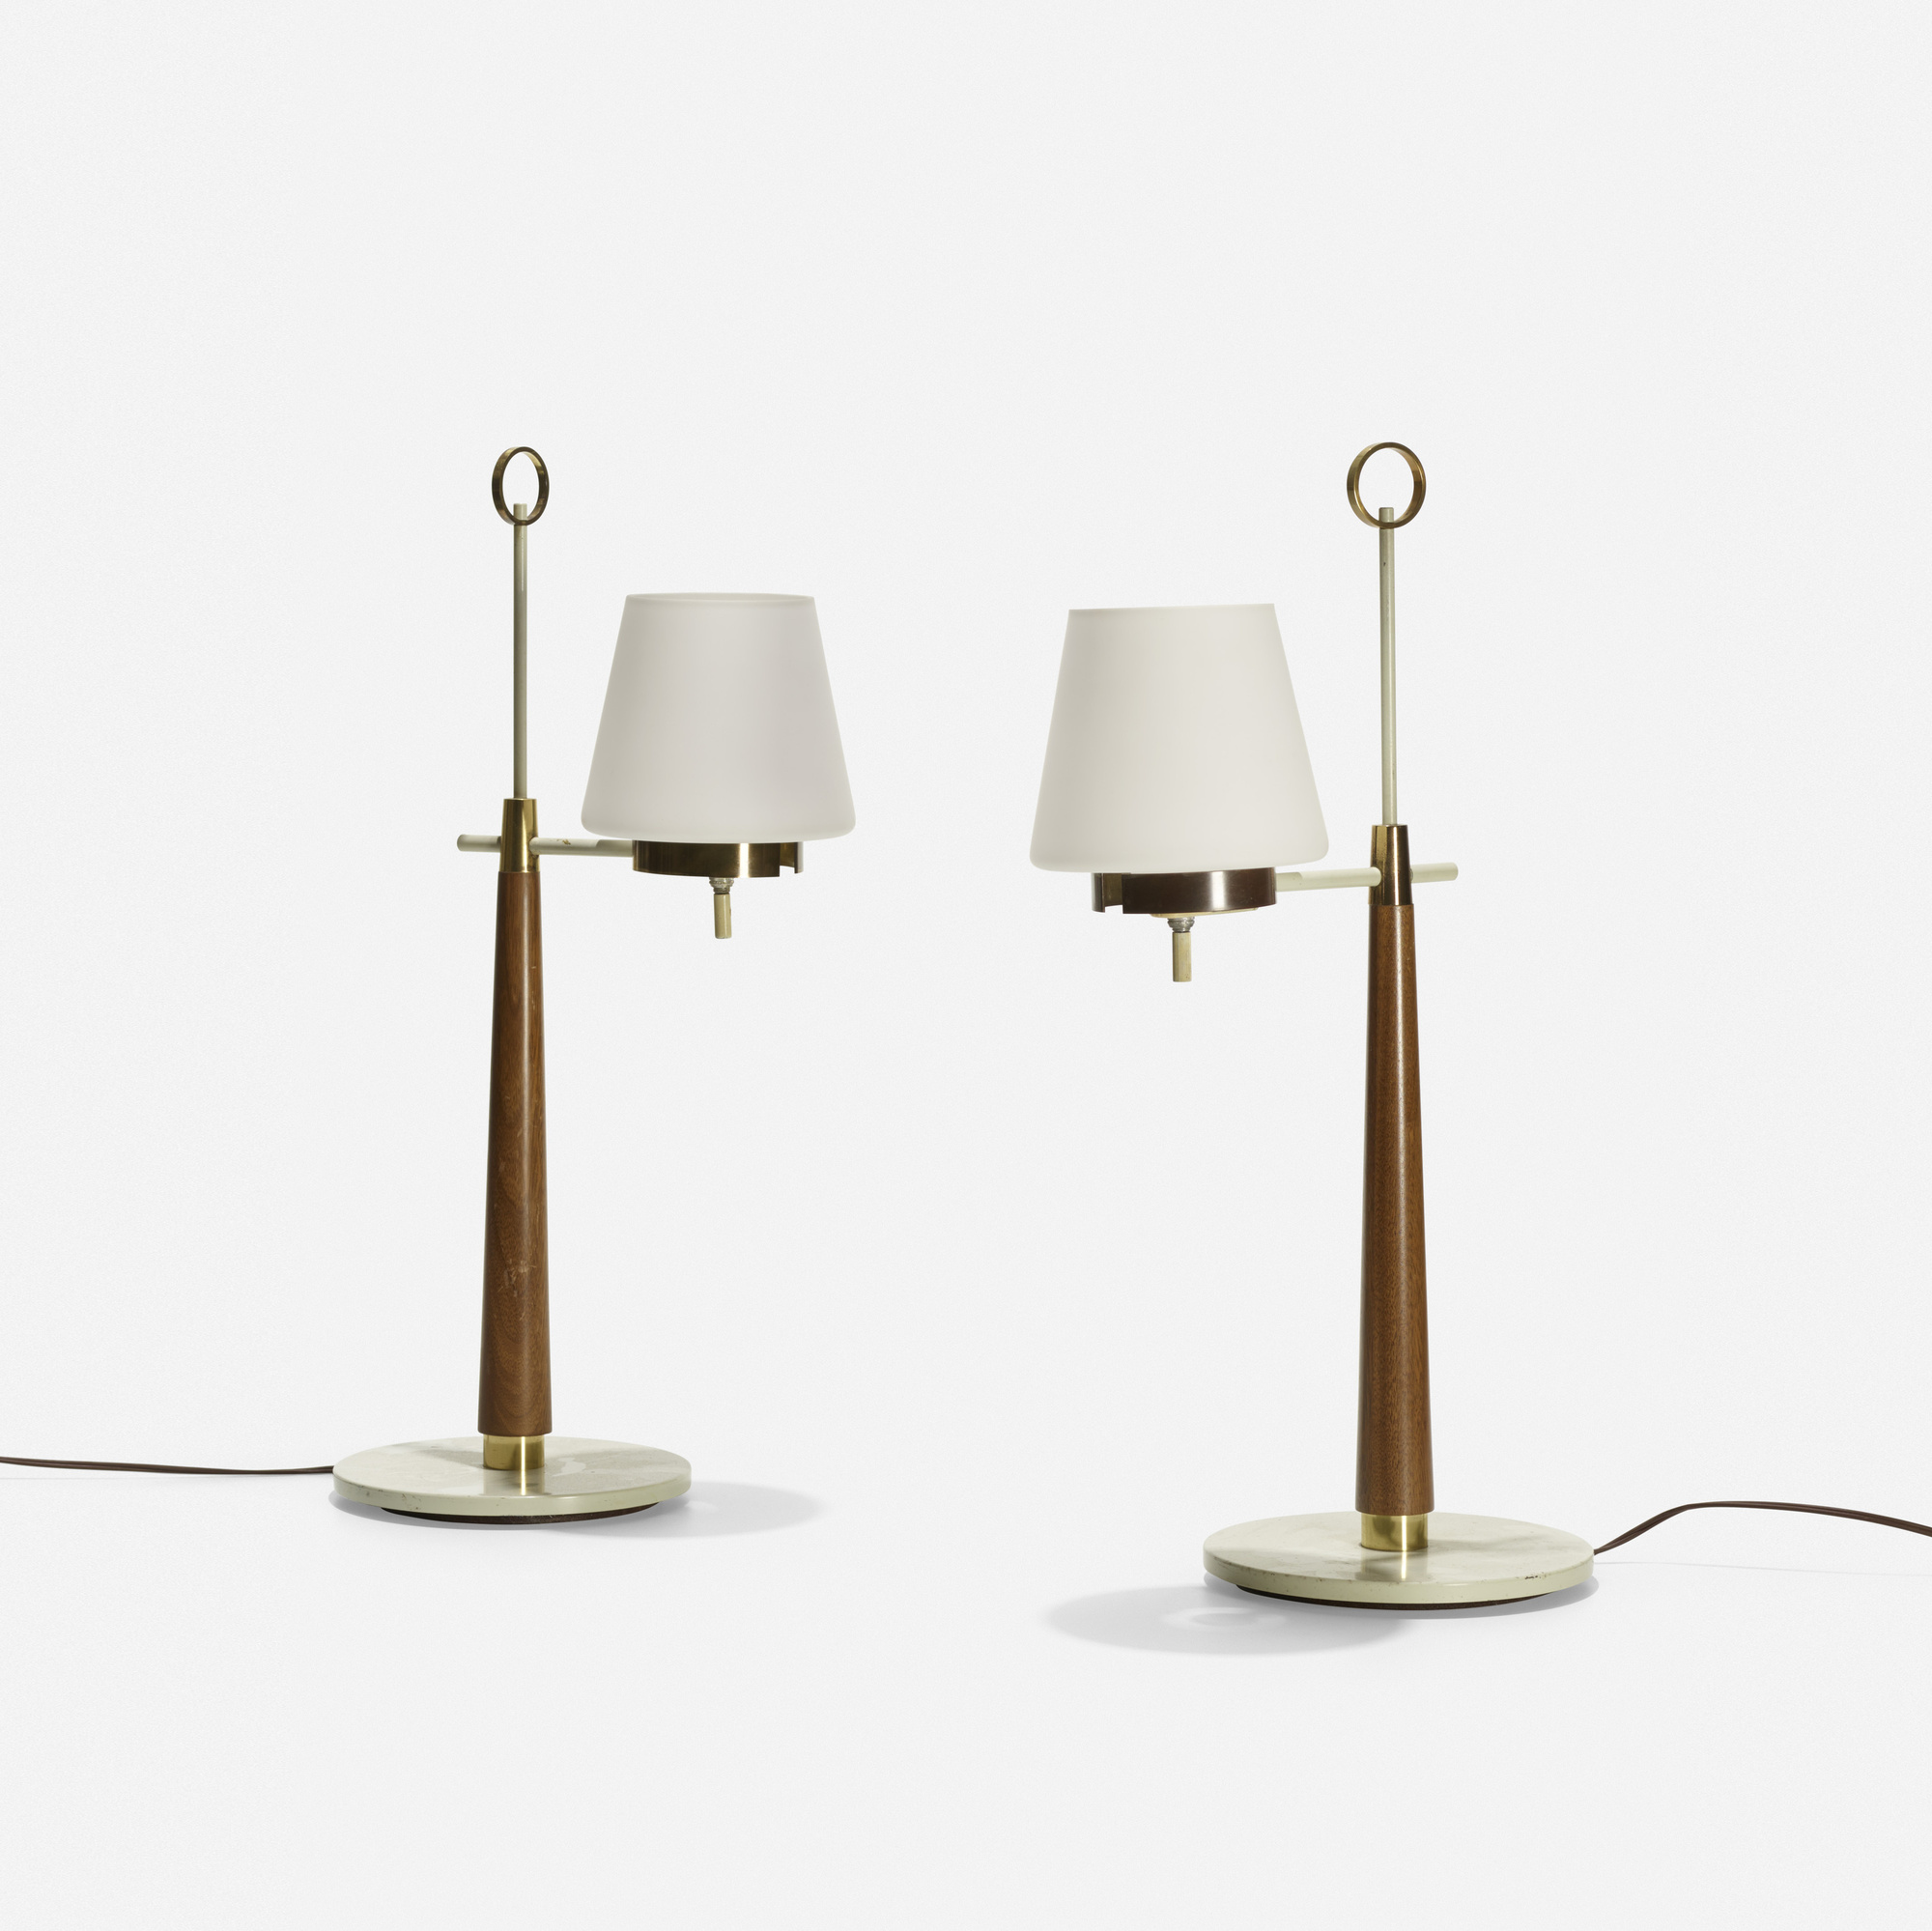 190: Gerald Thurston / table lamps, pair (1 of 1)